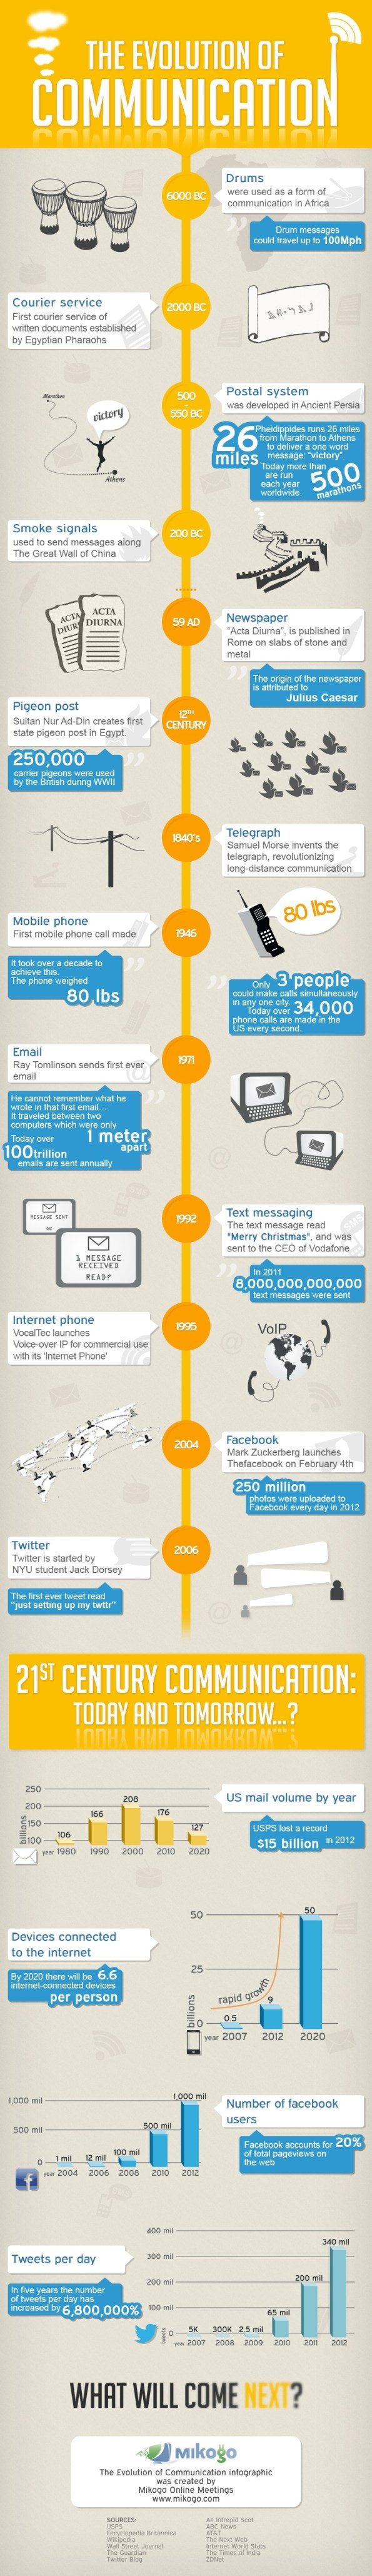 evolution-of-communication-infographic-full-size